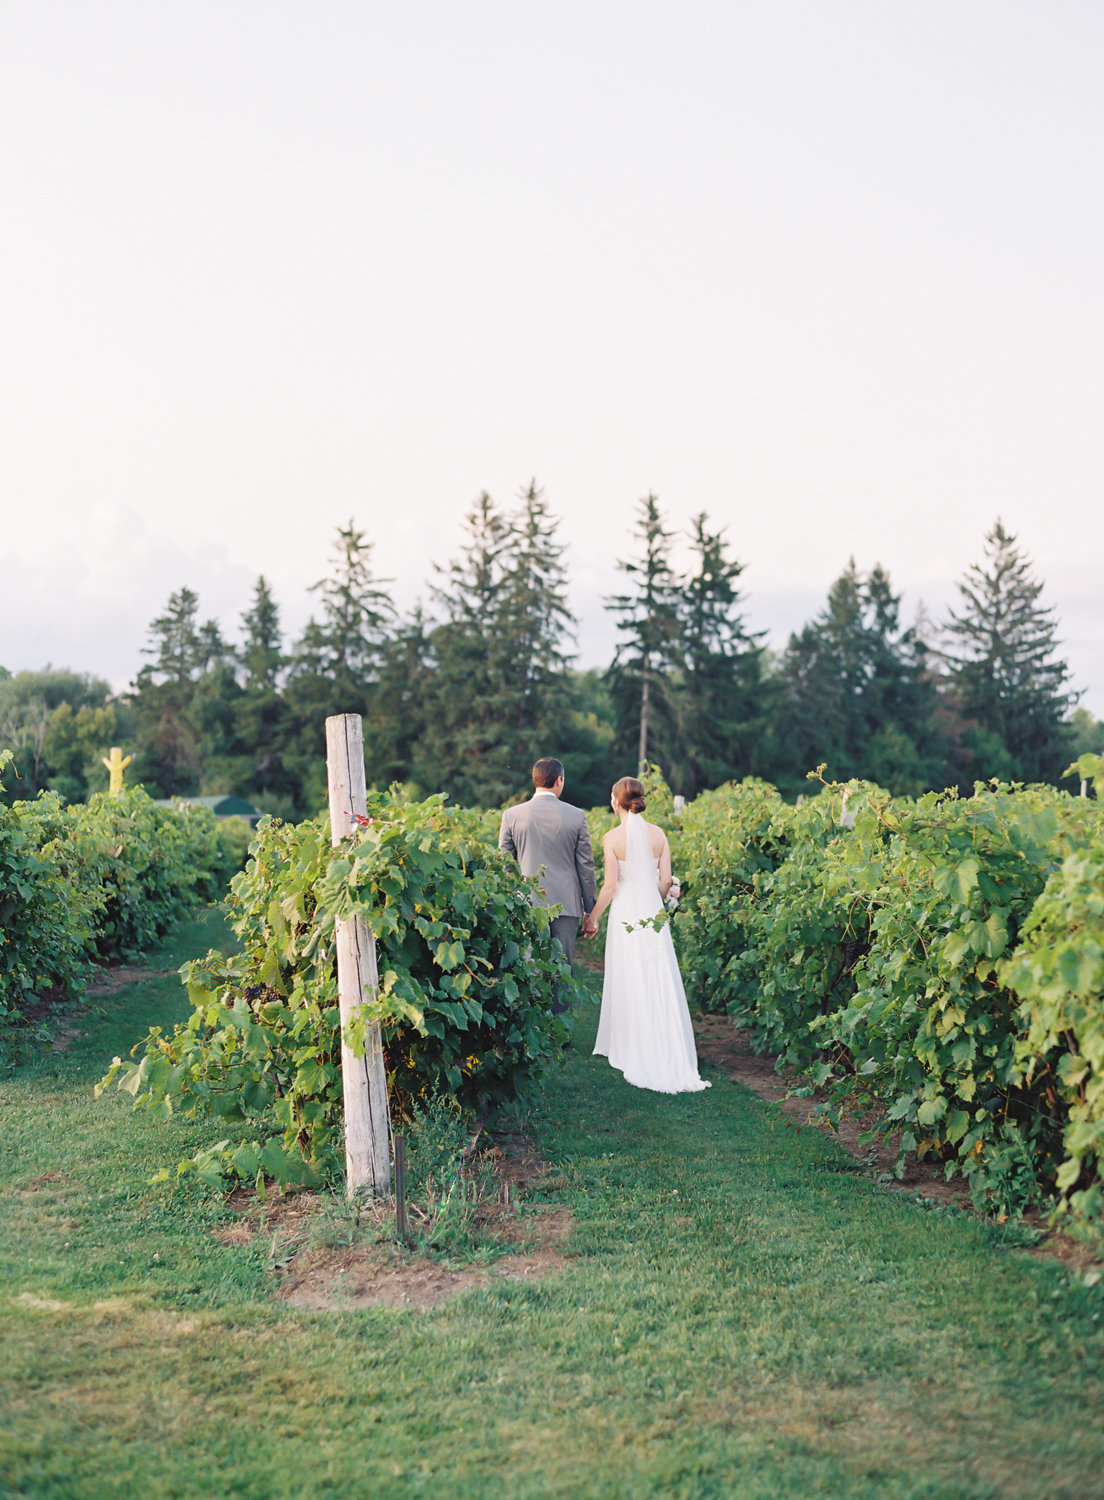 Jacqueline Anne Photography - Ottawa vineyard wedding-27